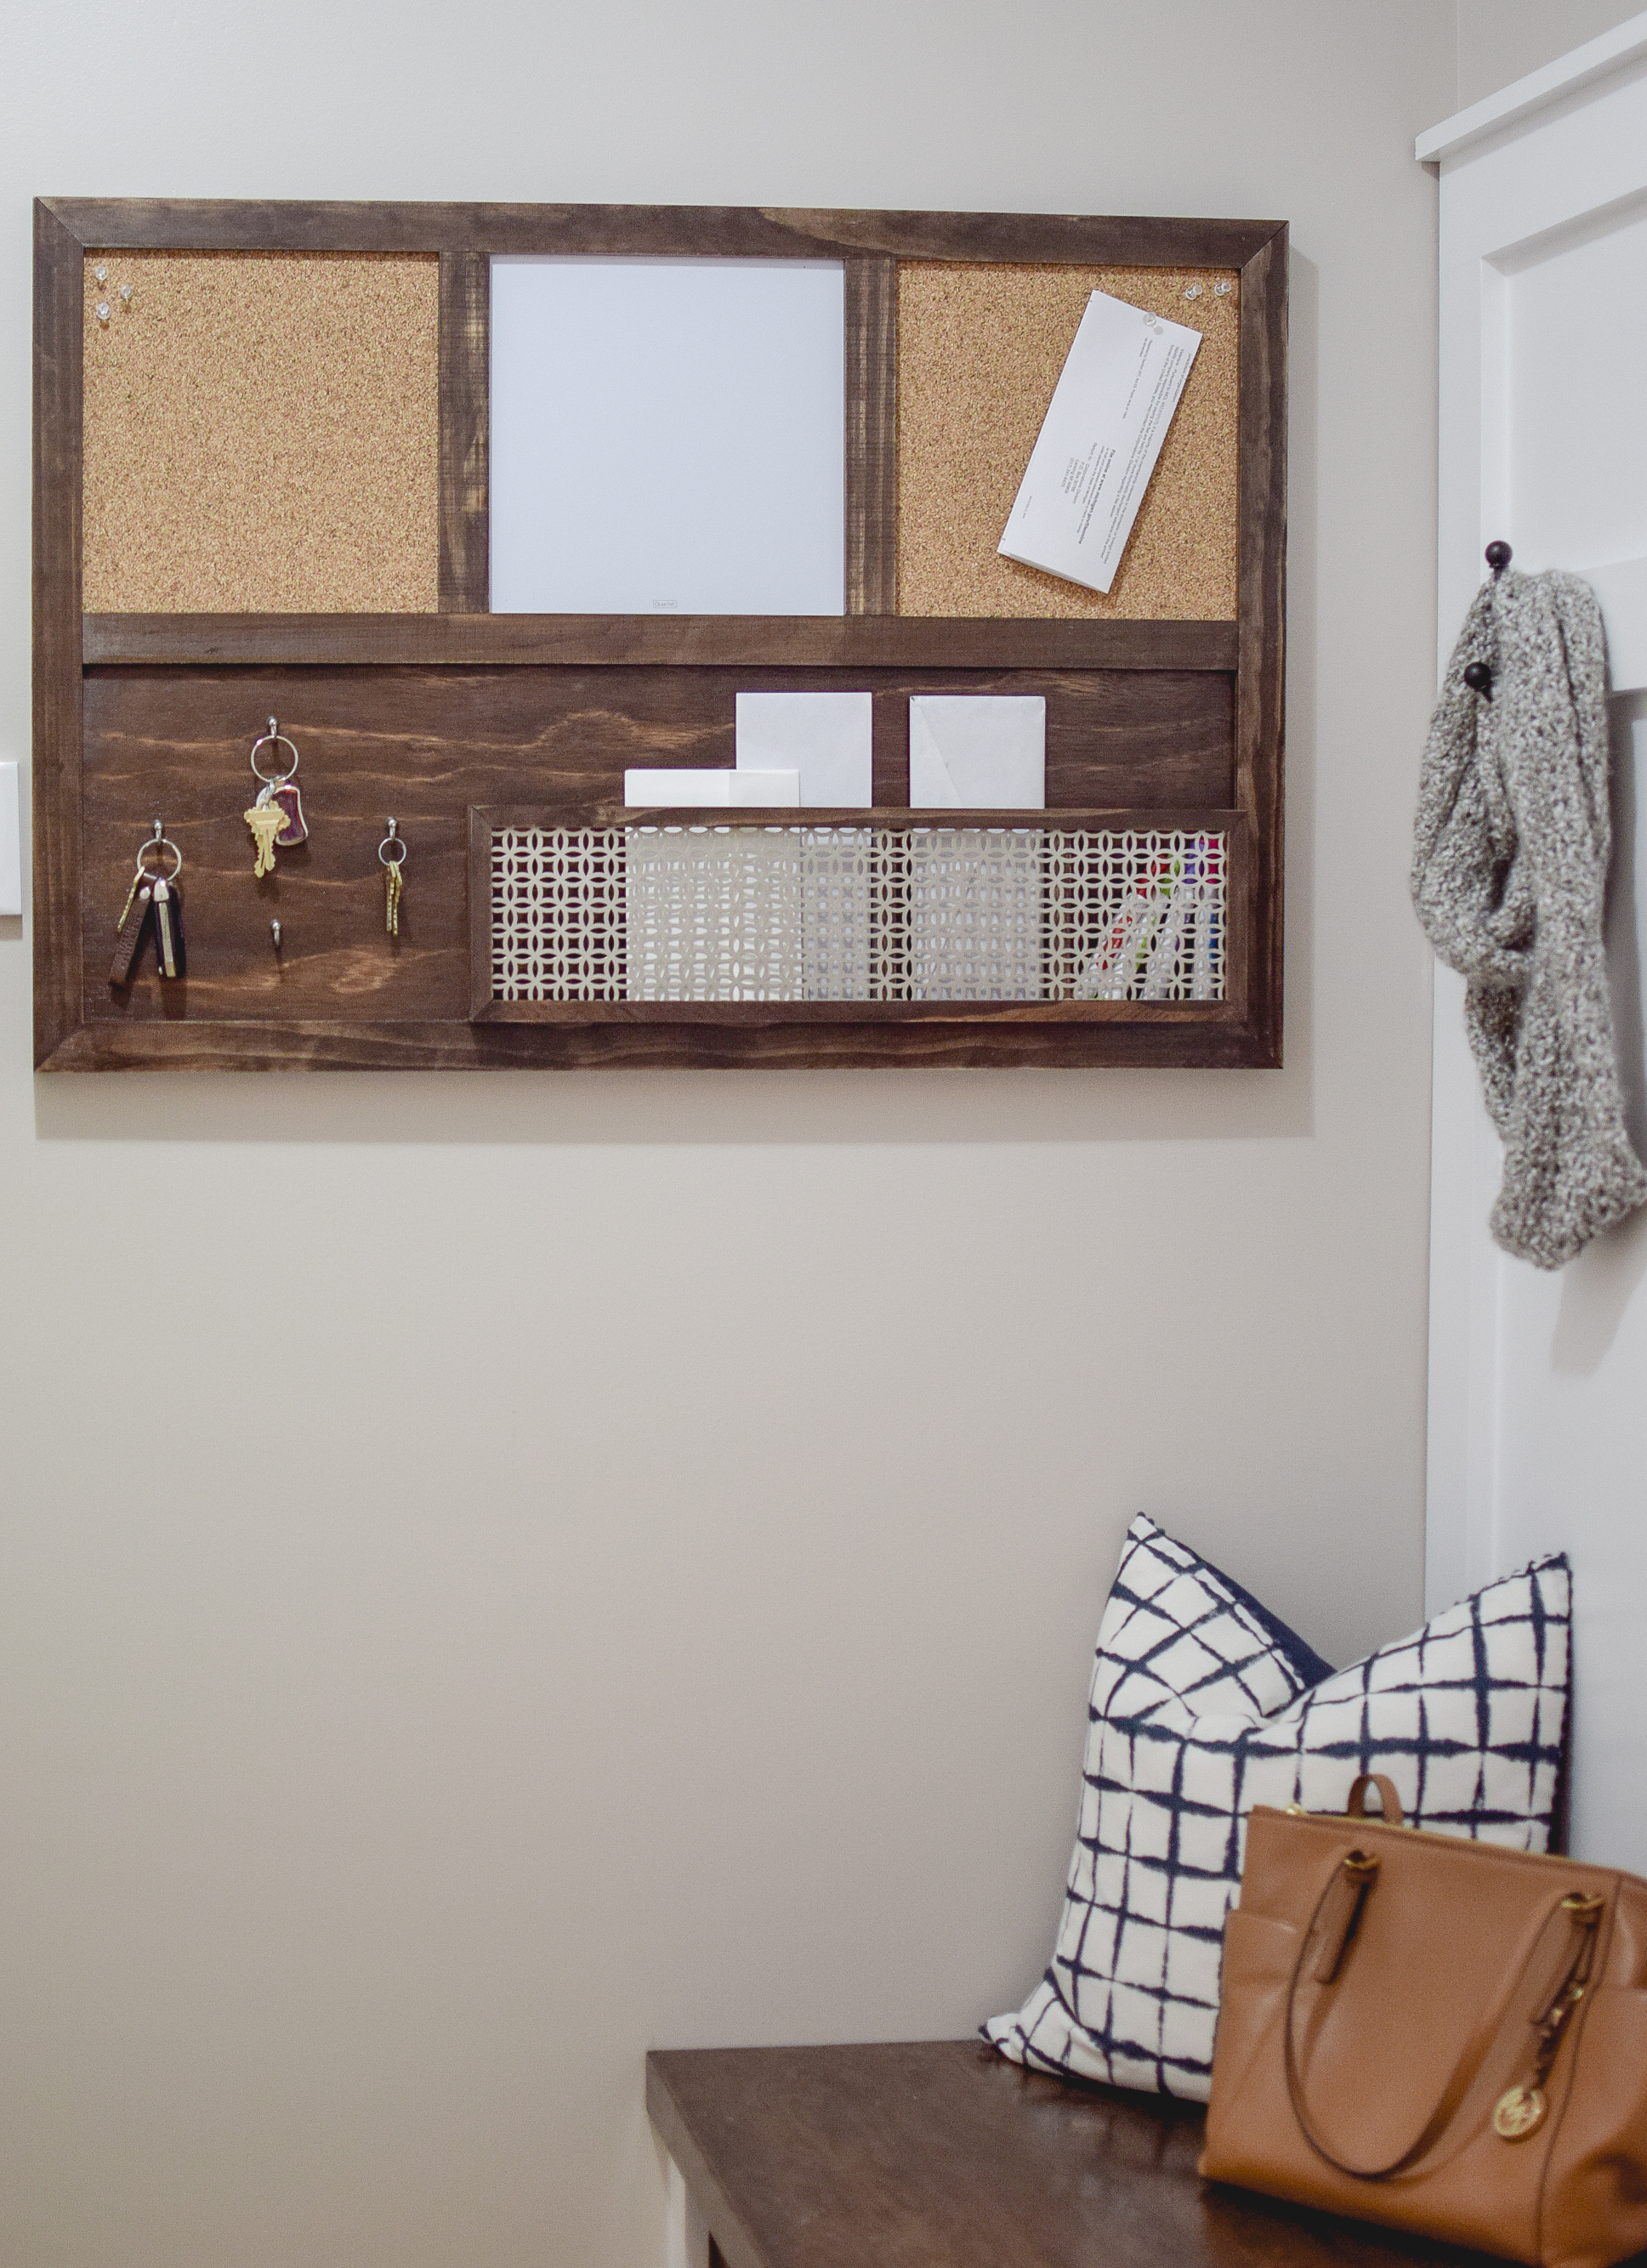 Add a key hook, mail basket, or message board in your mudroom for one-stop organization of the little things that commonly get lost.